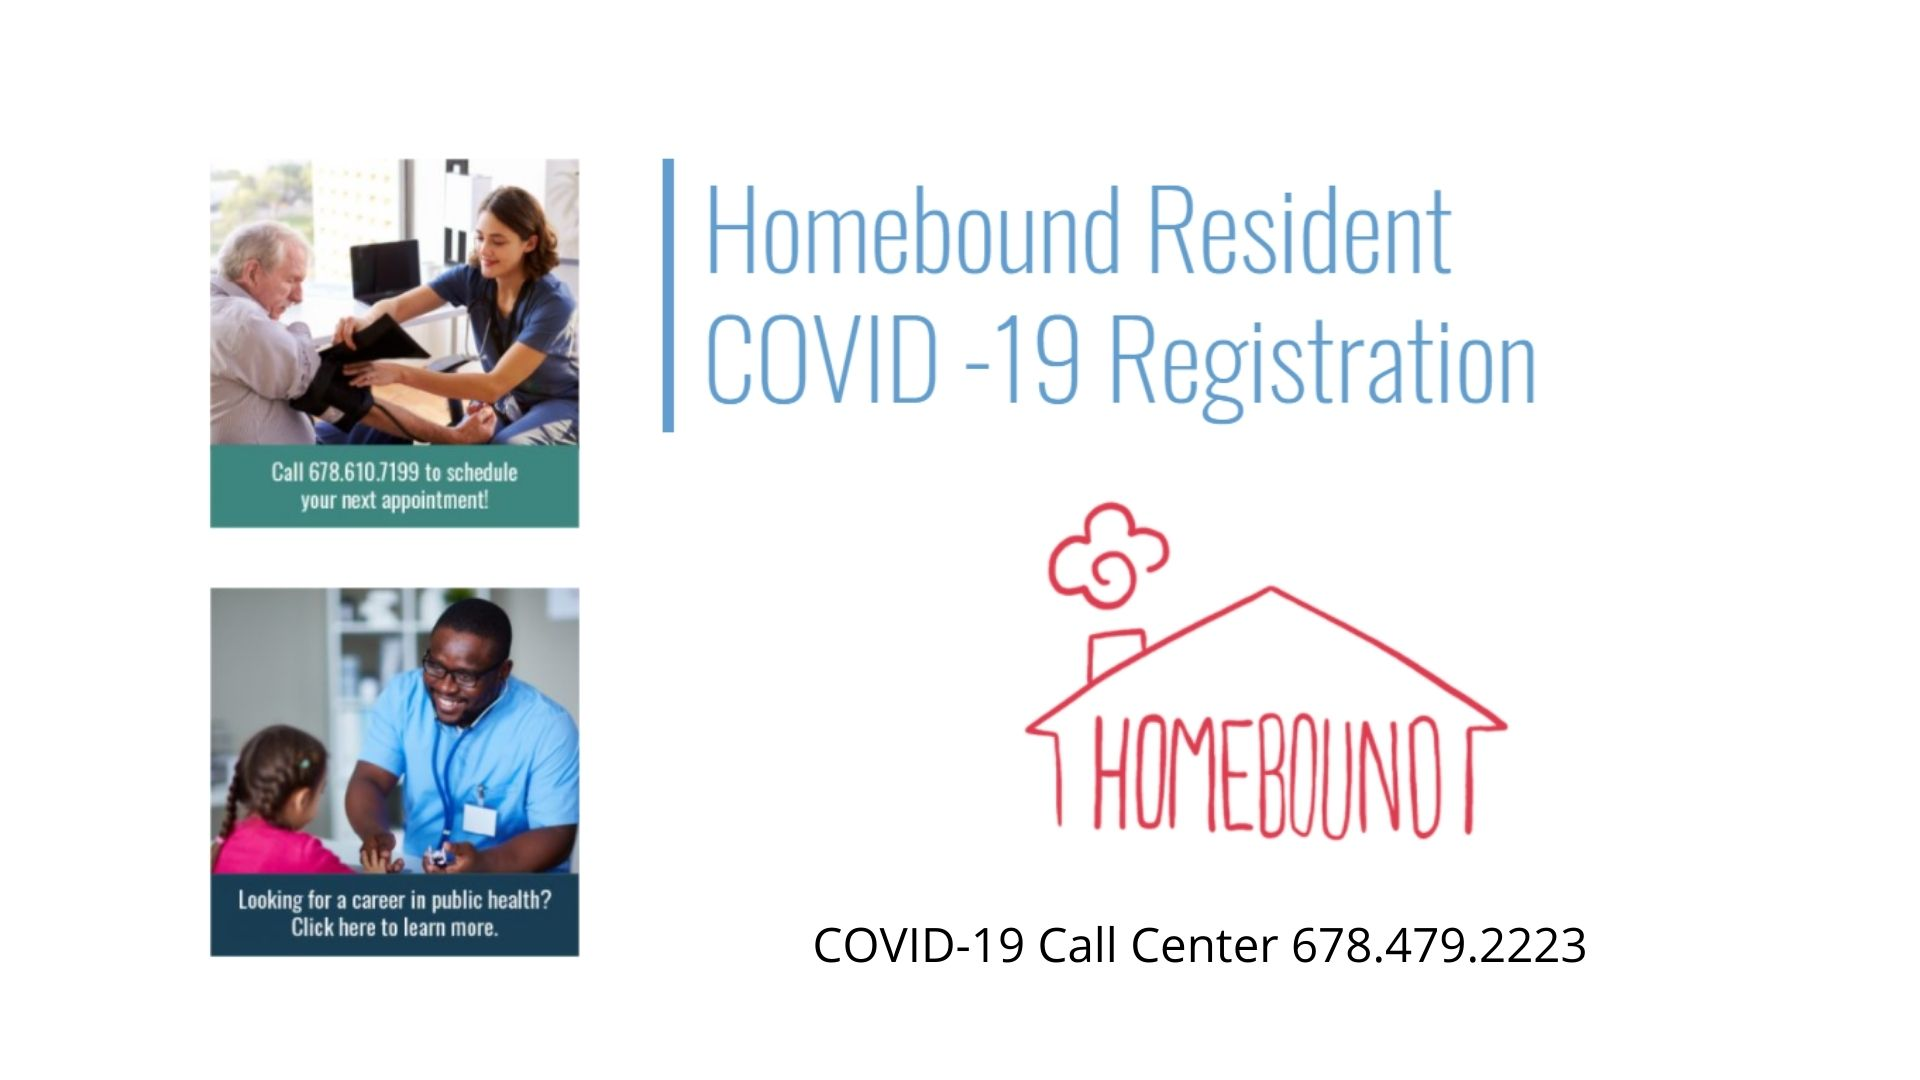 Homebound Resident COVID -19 Vaccination Scheduling